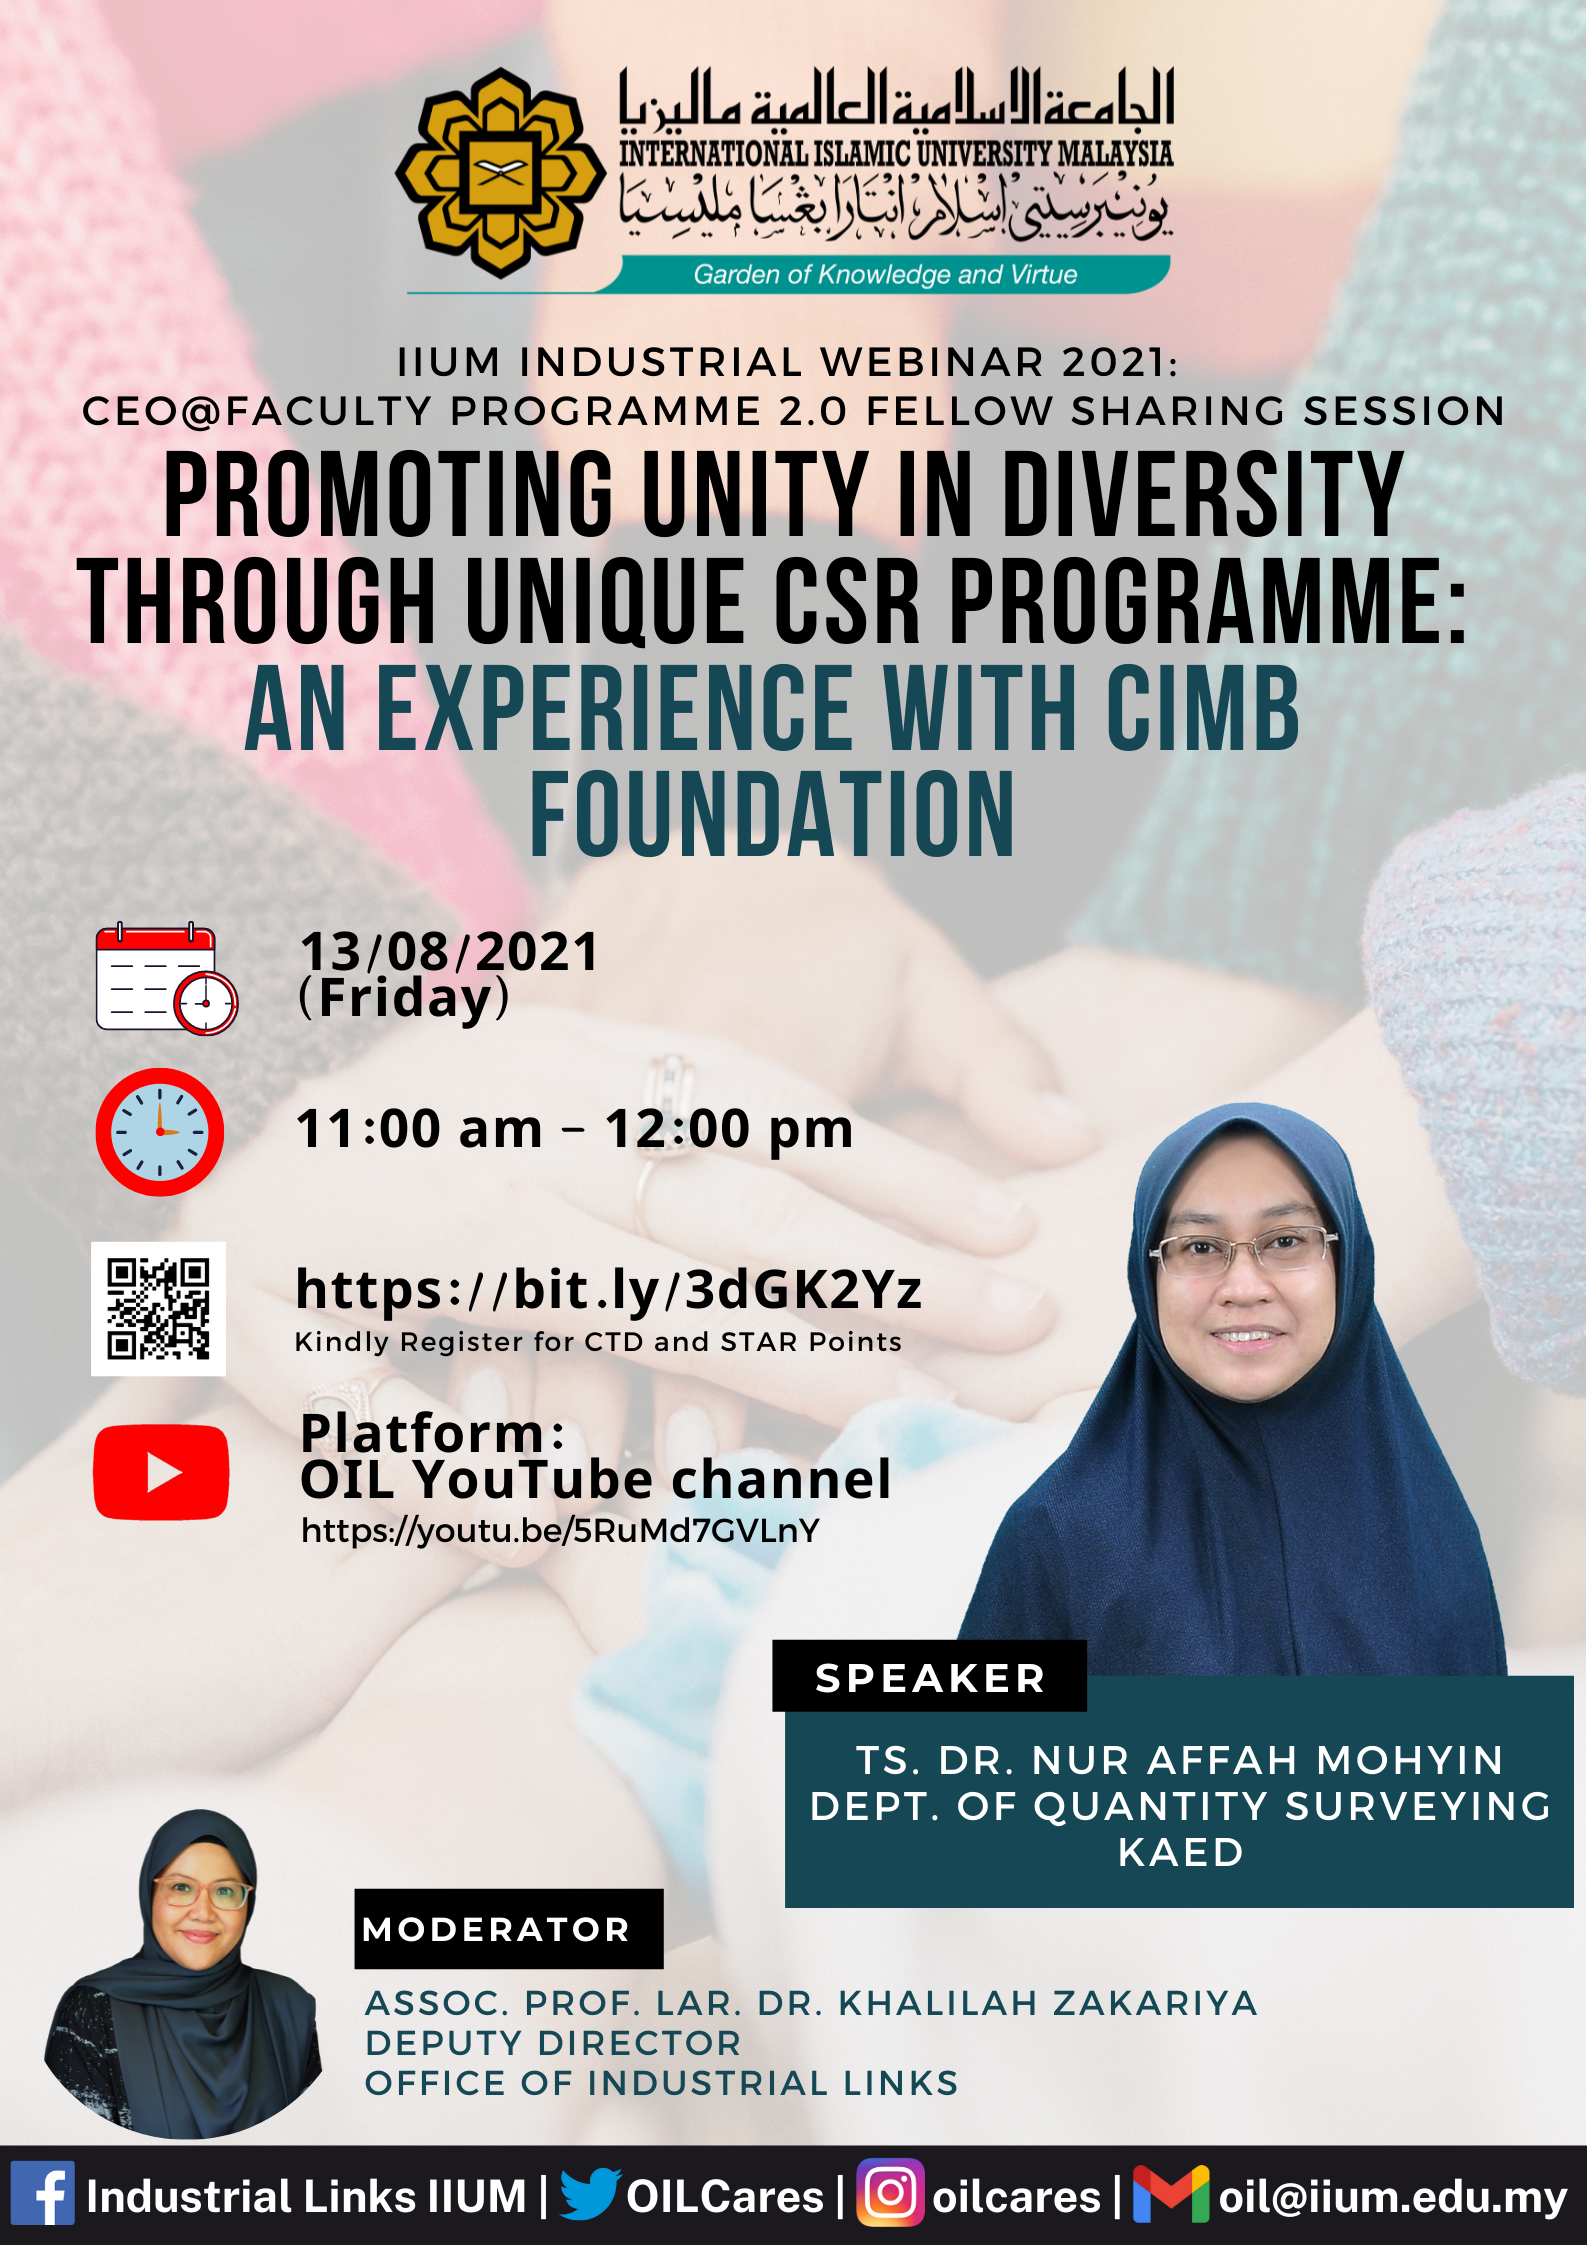 IIUM Industrial Webinar series 2021: Promoting Unity in Diversity through unique CSR Programme: An Experience with CIMB Foundation